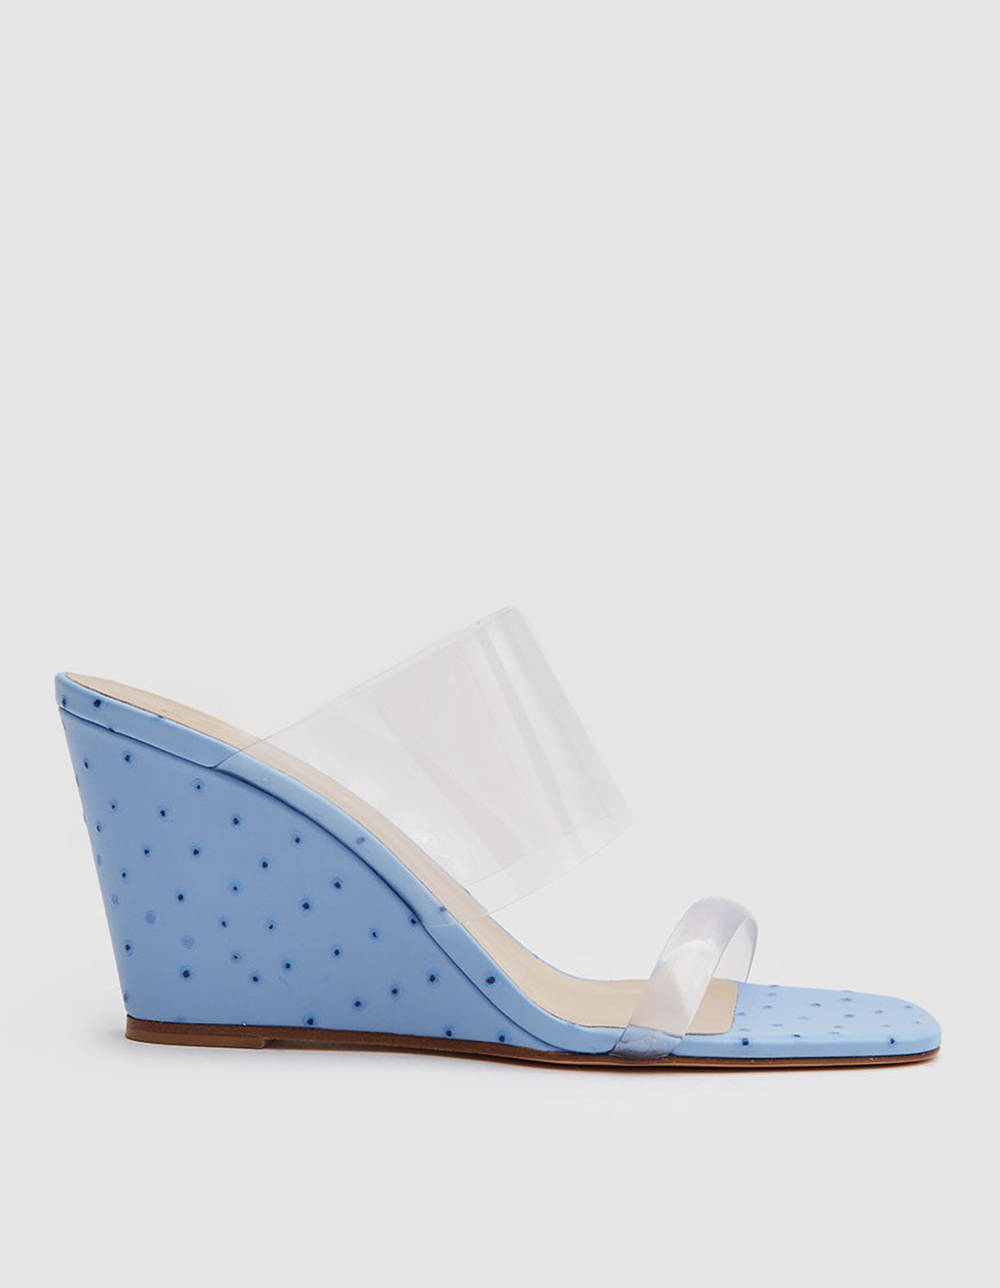 blue ostrich wedges | @themissprints